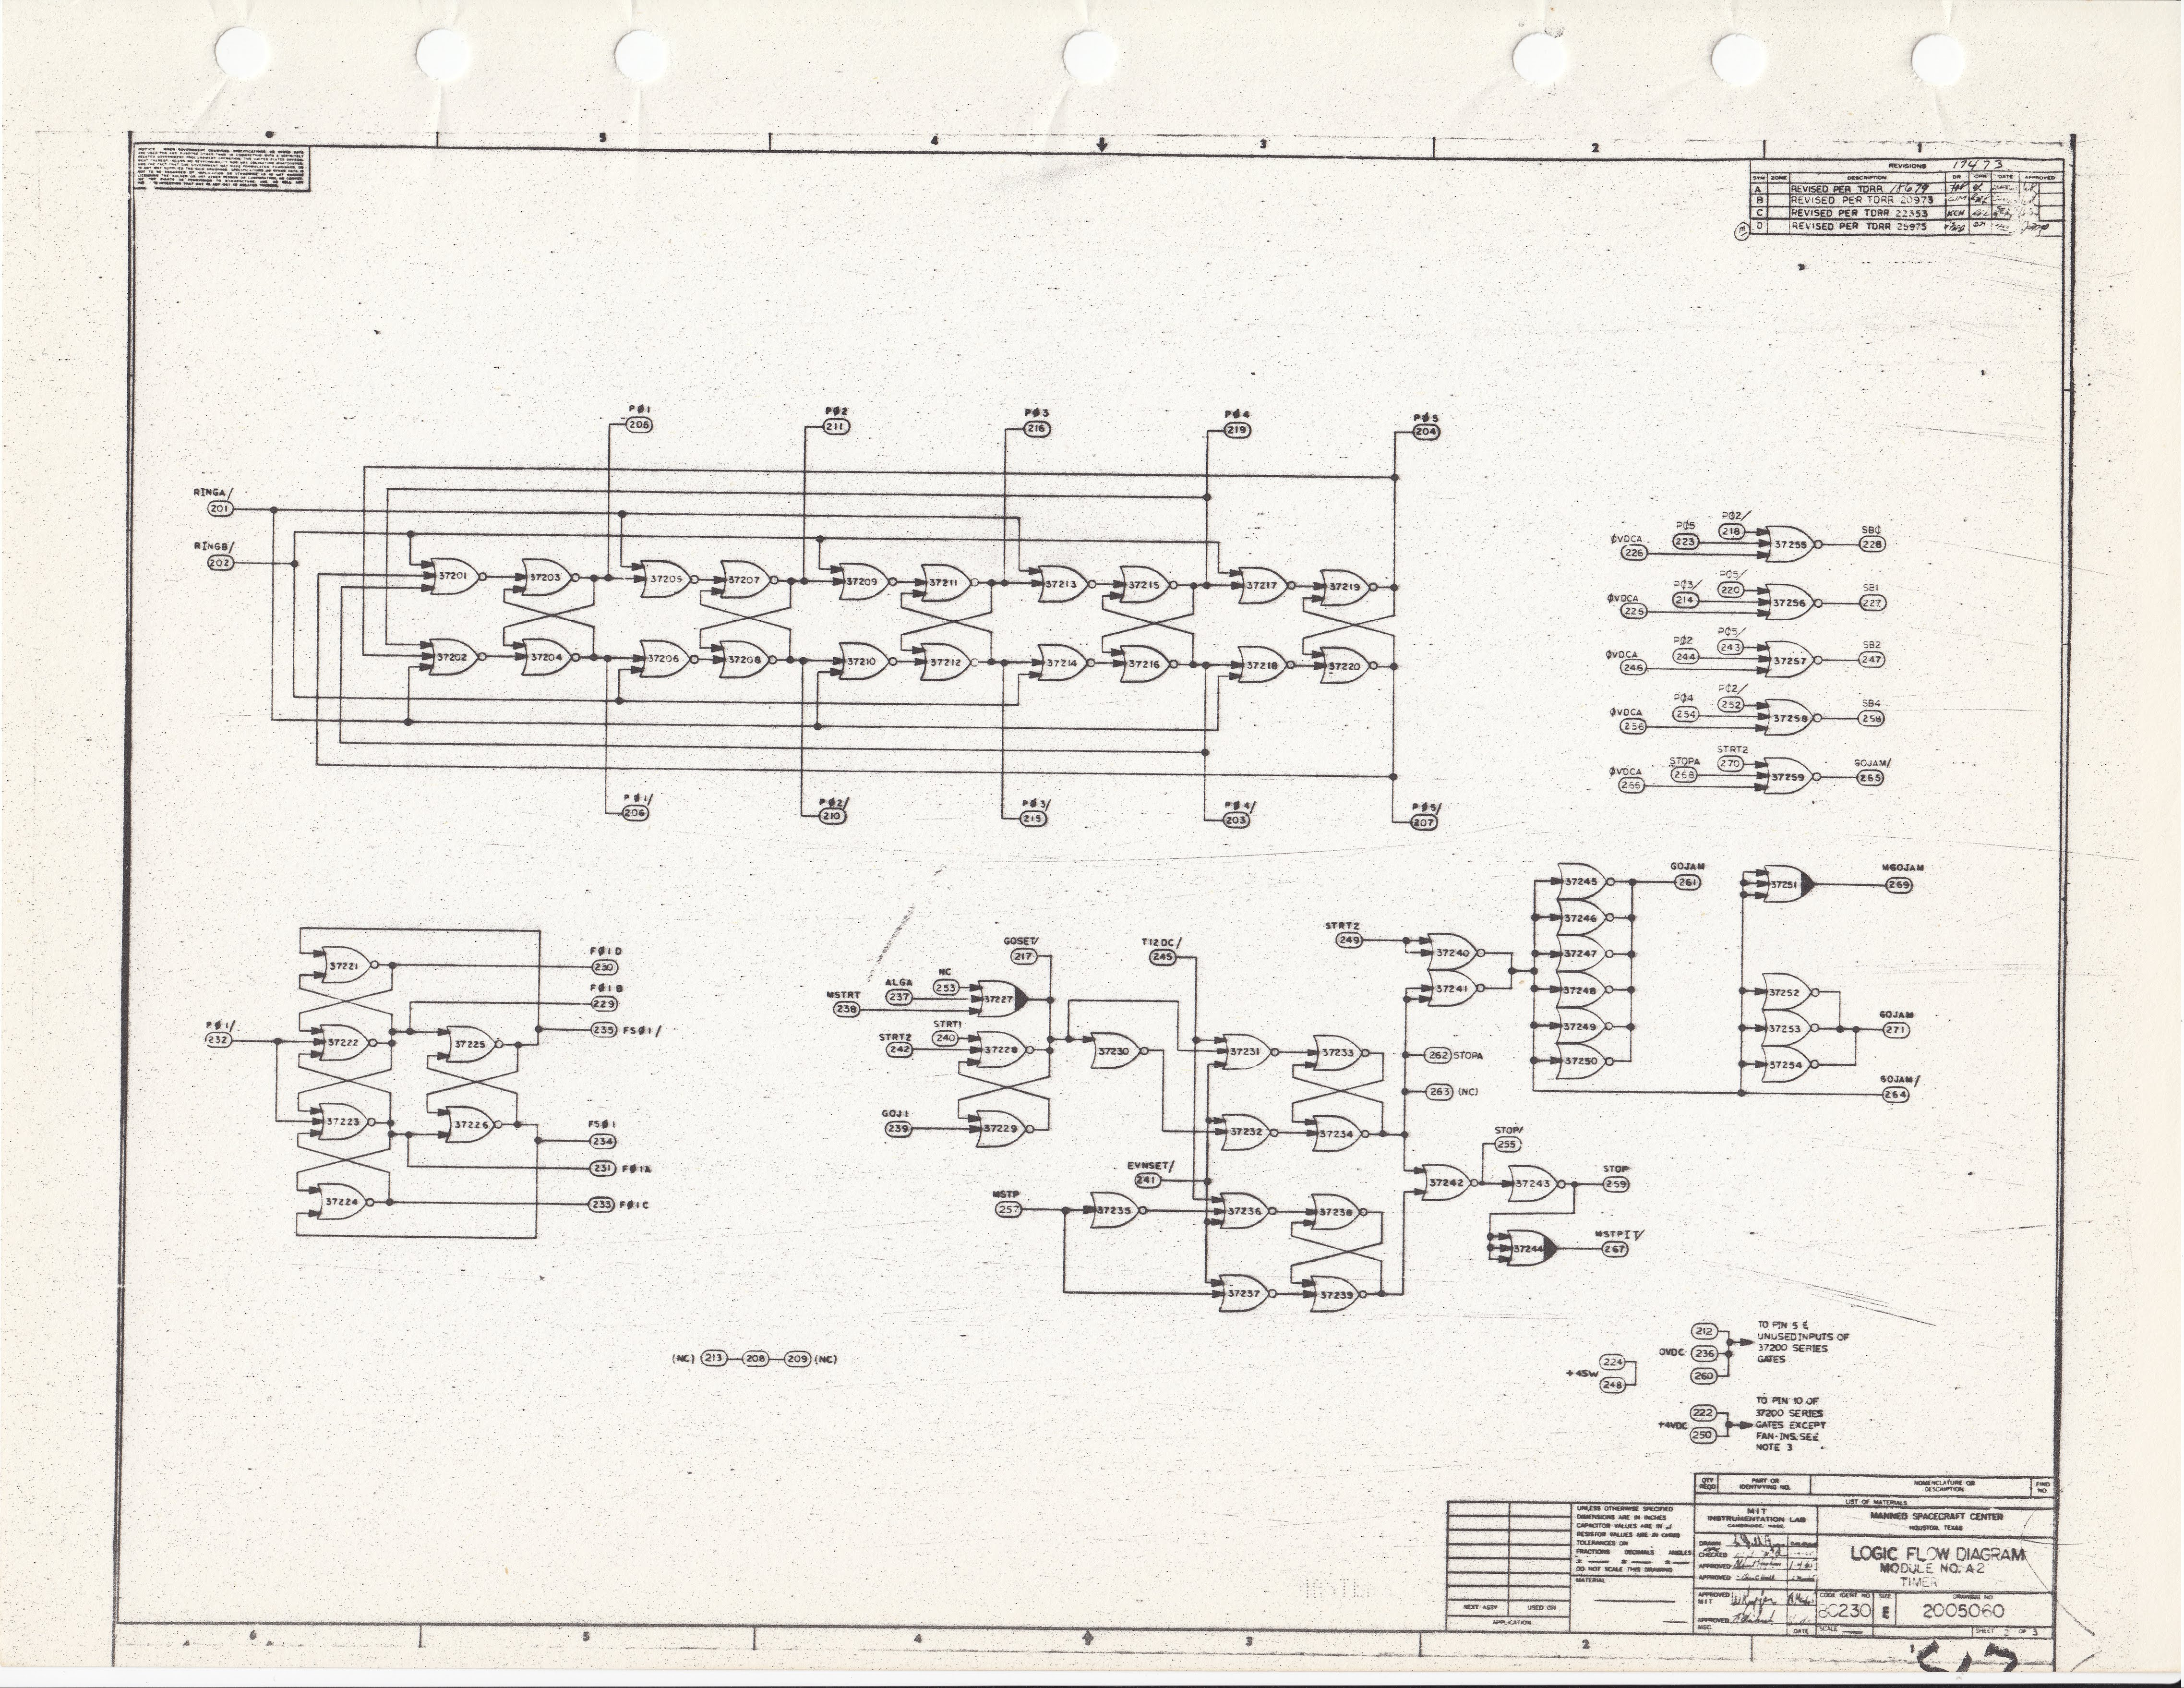 Virtual Agc Electrical Mechanical Page Of Fortune Circuit Diagram Electronic Diagrams Schematics 2005060d 1 2